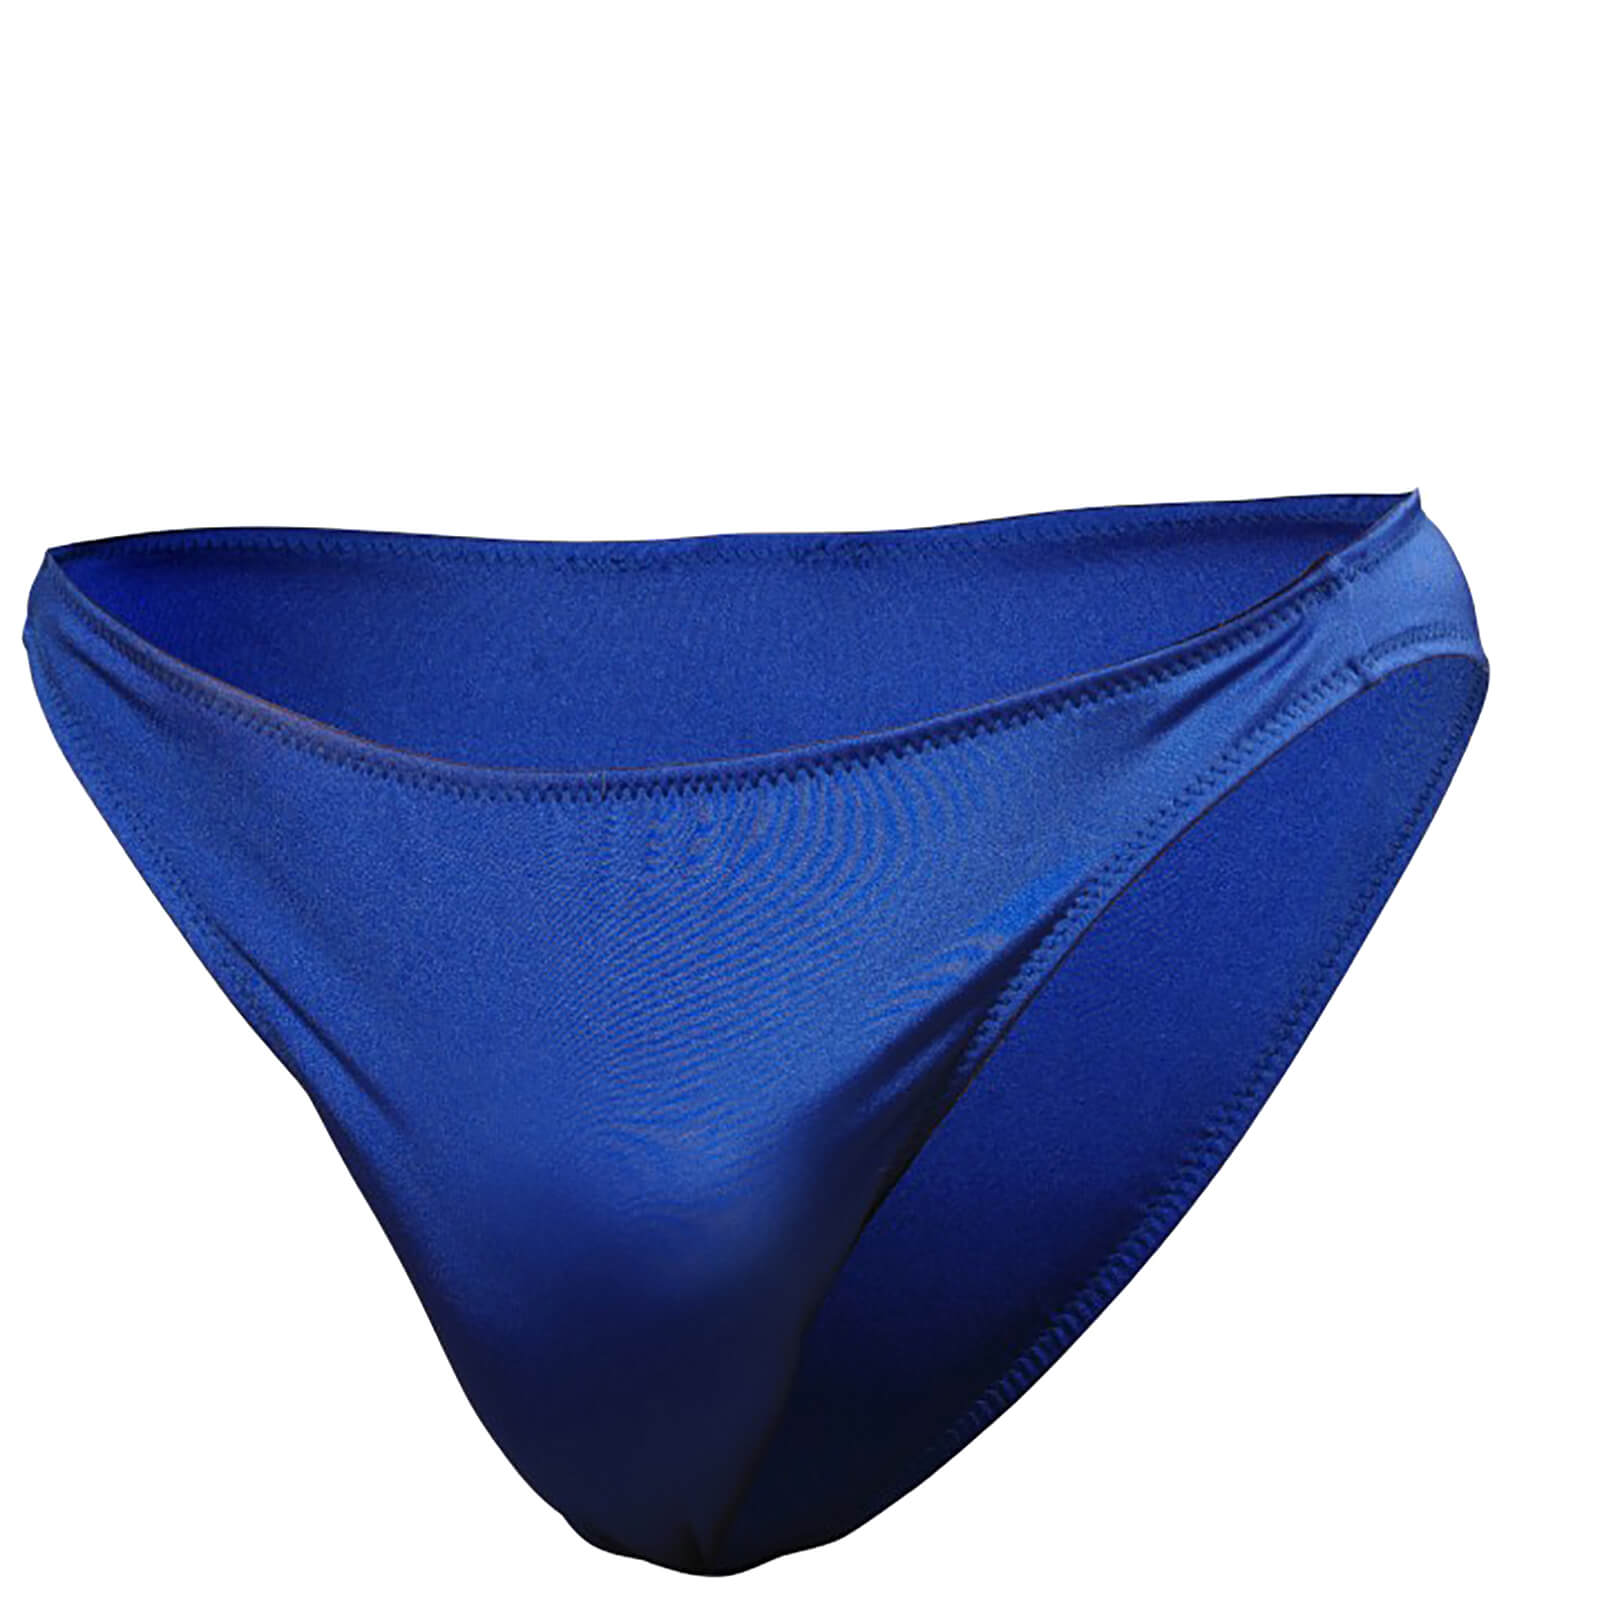 GASP Original POSE Trunks - Royal Blue - S